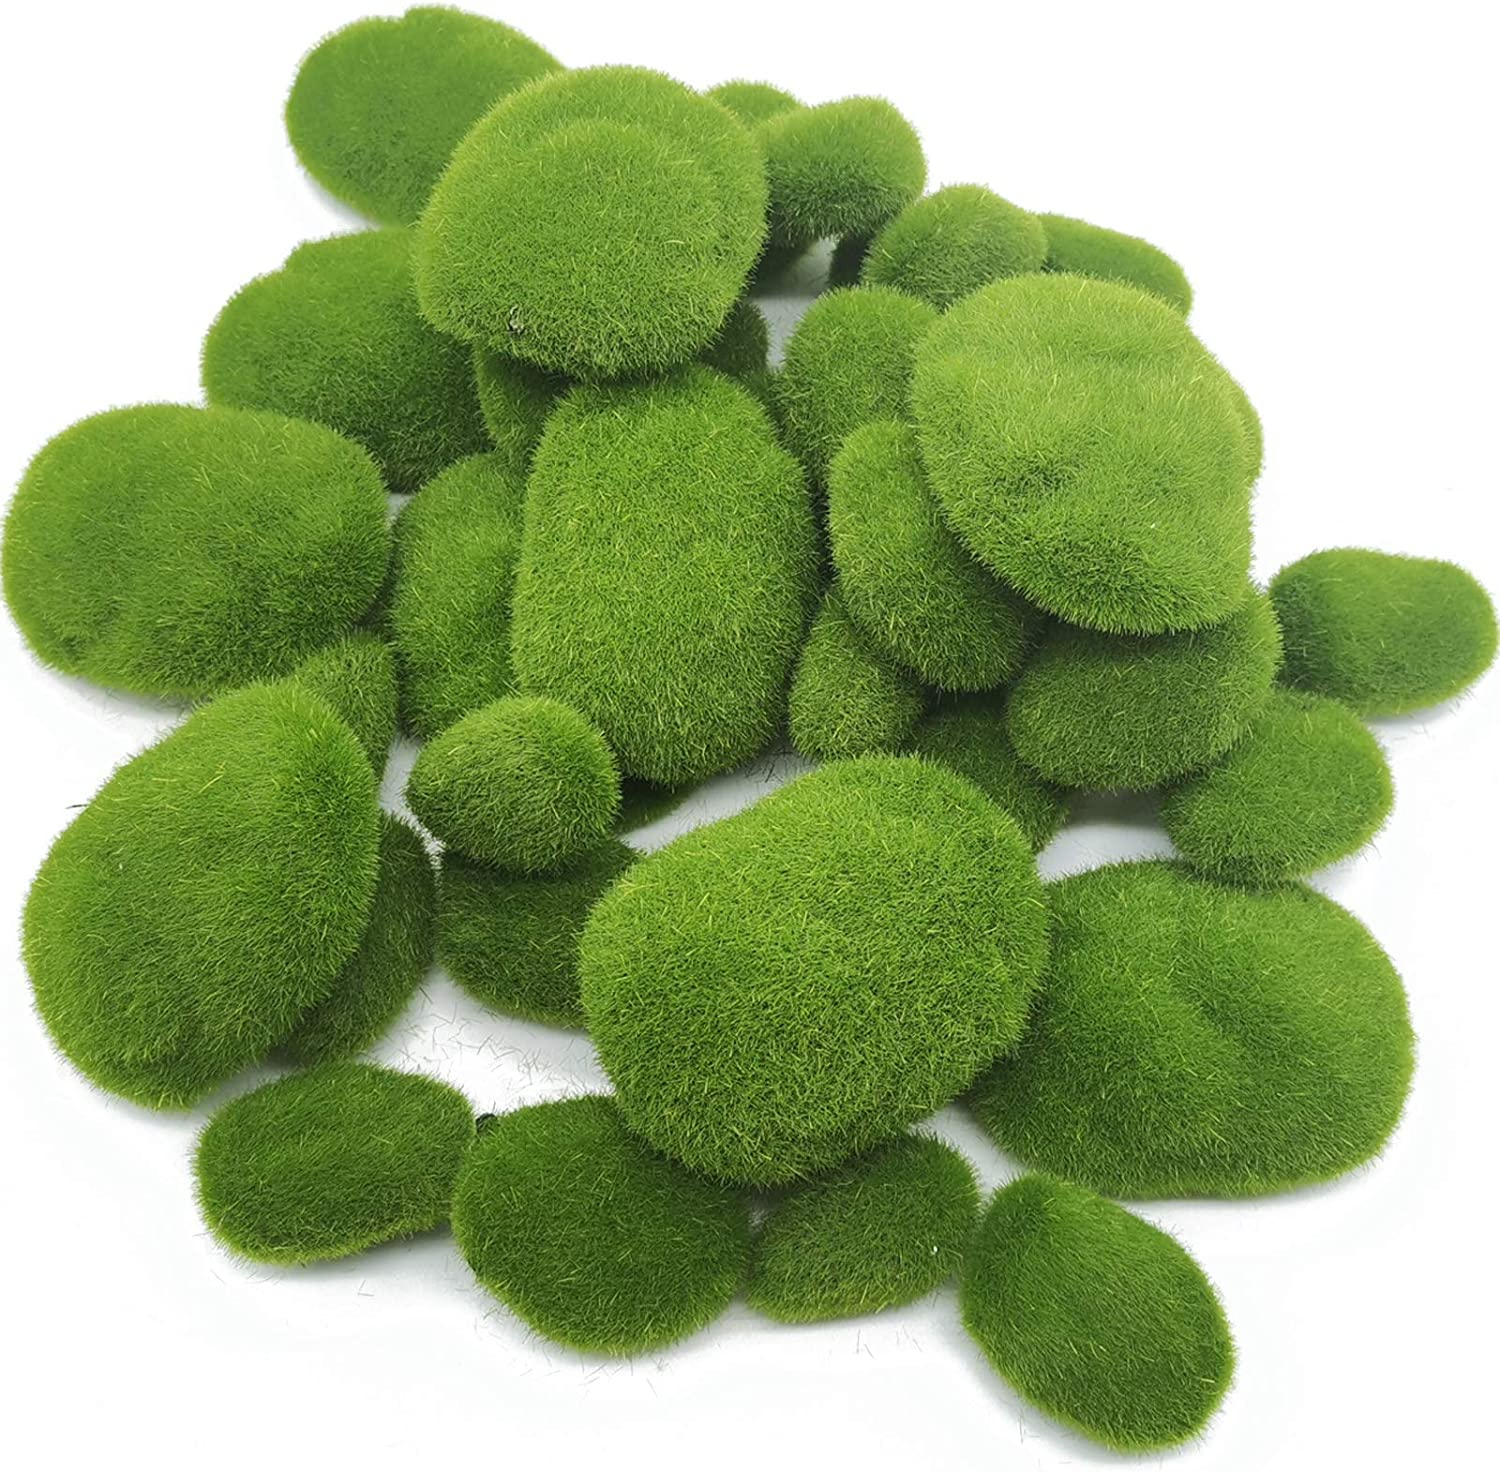 TIHOOD 40PCS 4 Size Artificial Moss Rocks Decorative, Green Moss Balls,Moss Stones, Green Moss Covered Stones, Fake Moss Decor for Floral Arrangements, Fairy Gardens and Crafting